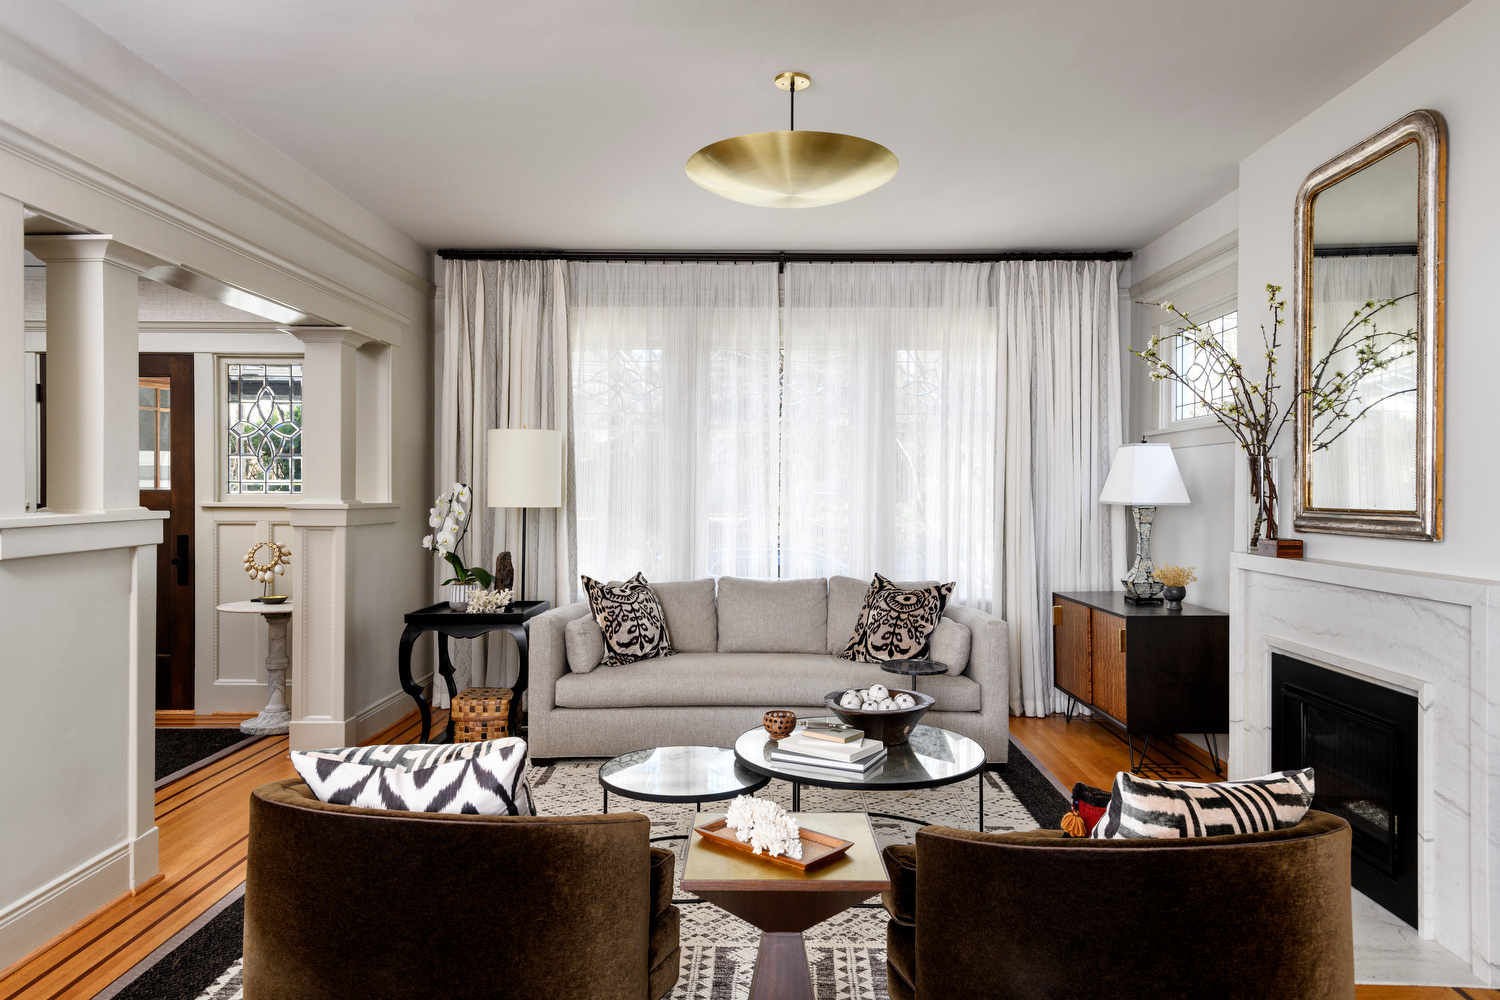 Holland Stephens Interiors - View east into the living room with custom made mohair swivel chairs.